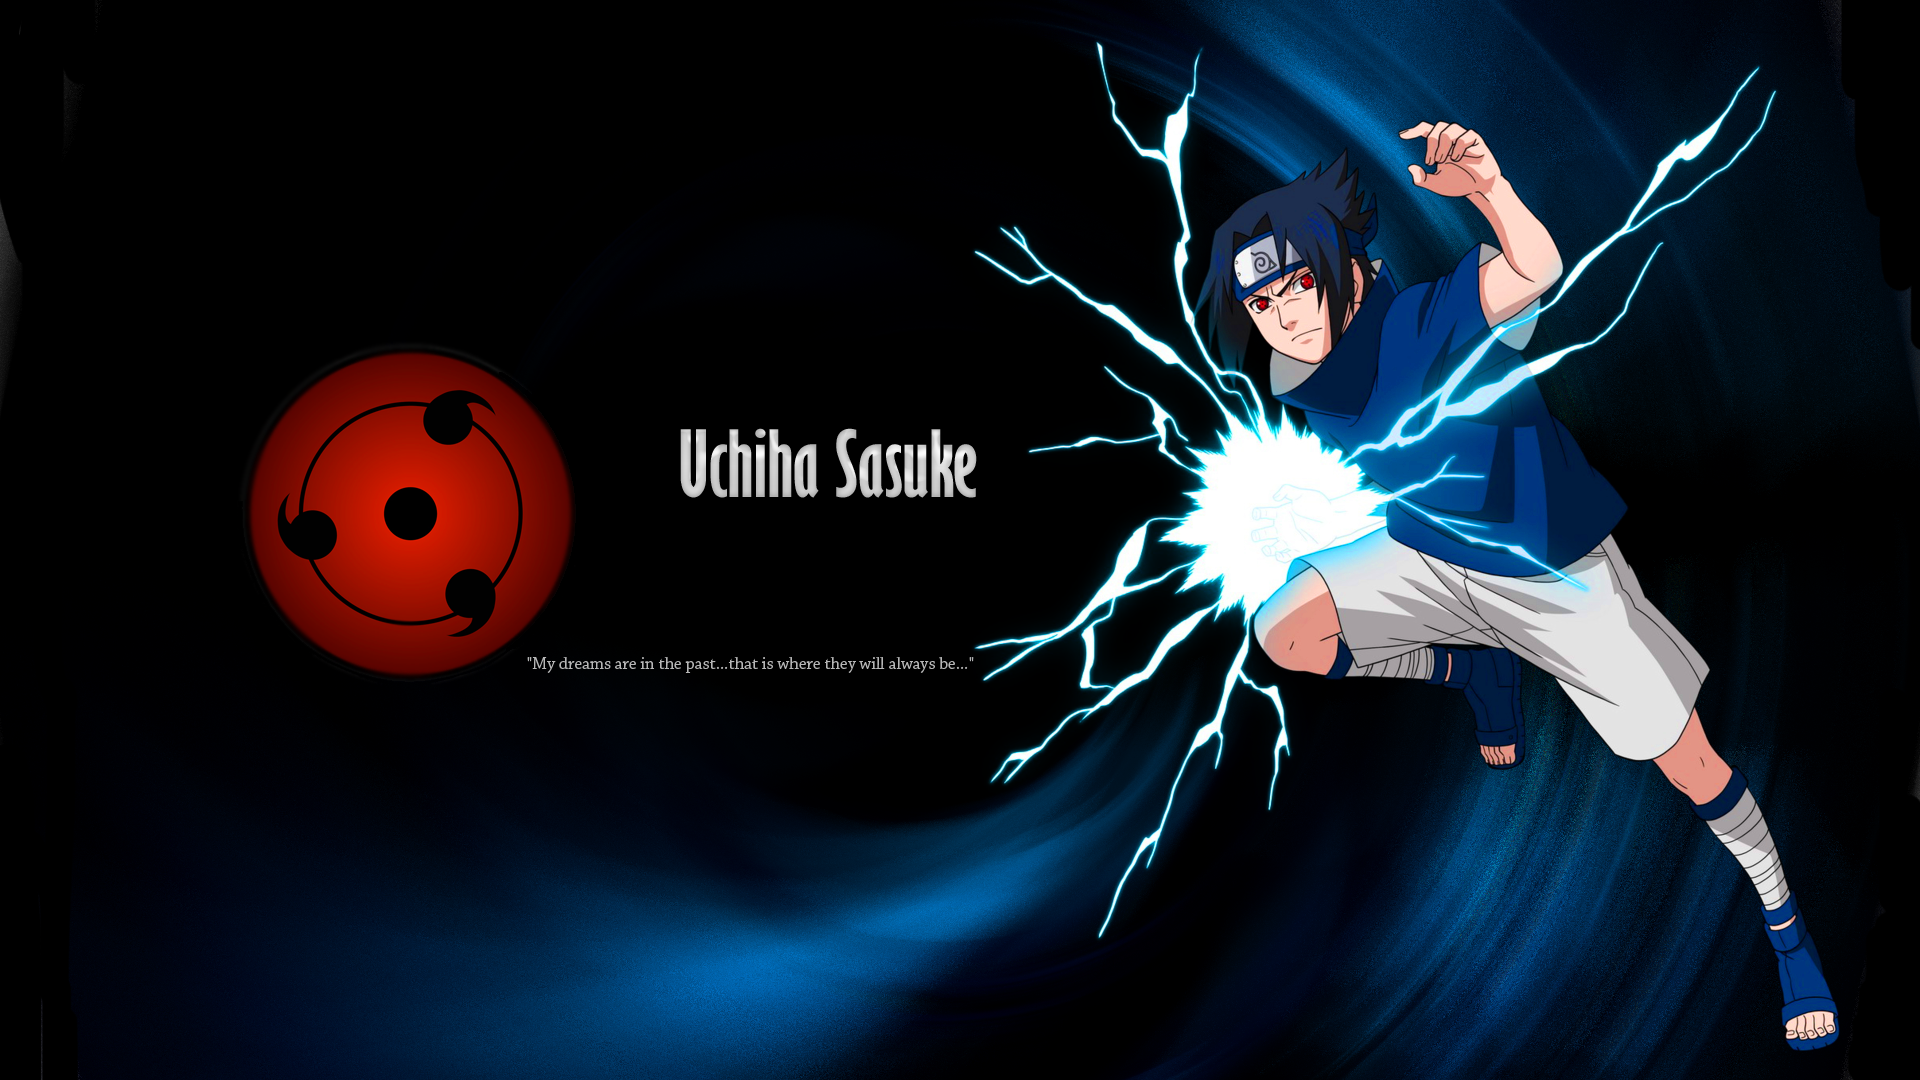 Naruto And Sasuke Wallpaper Shippuden Wallpapersafari